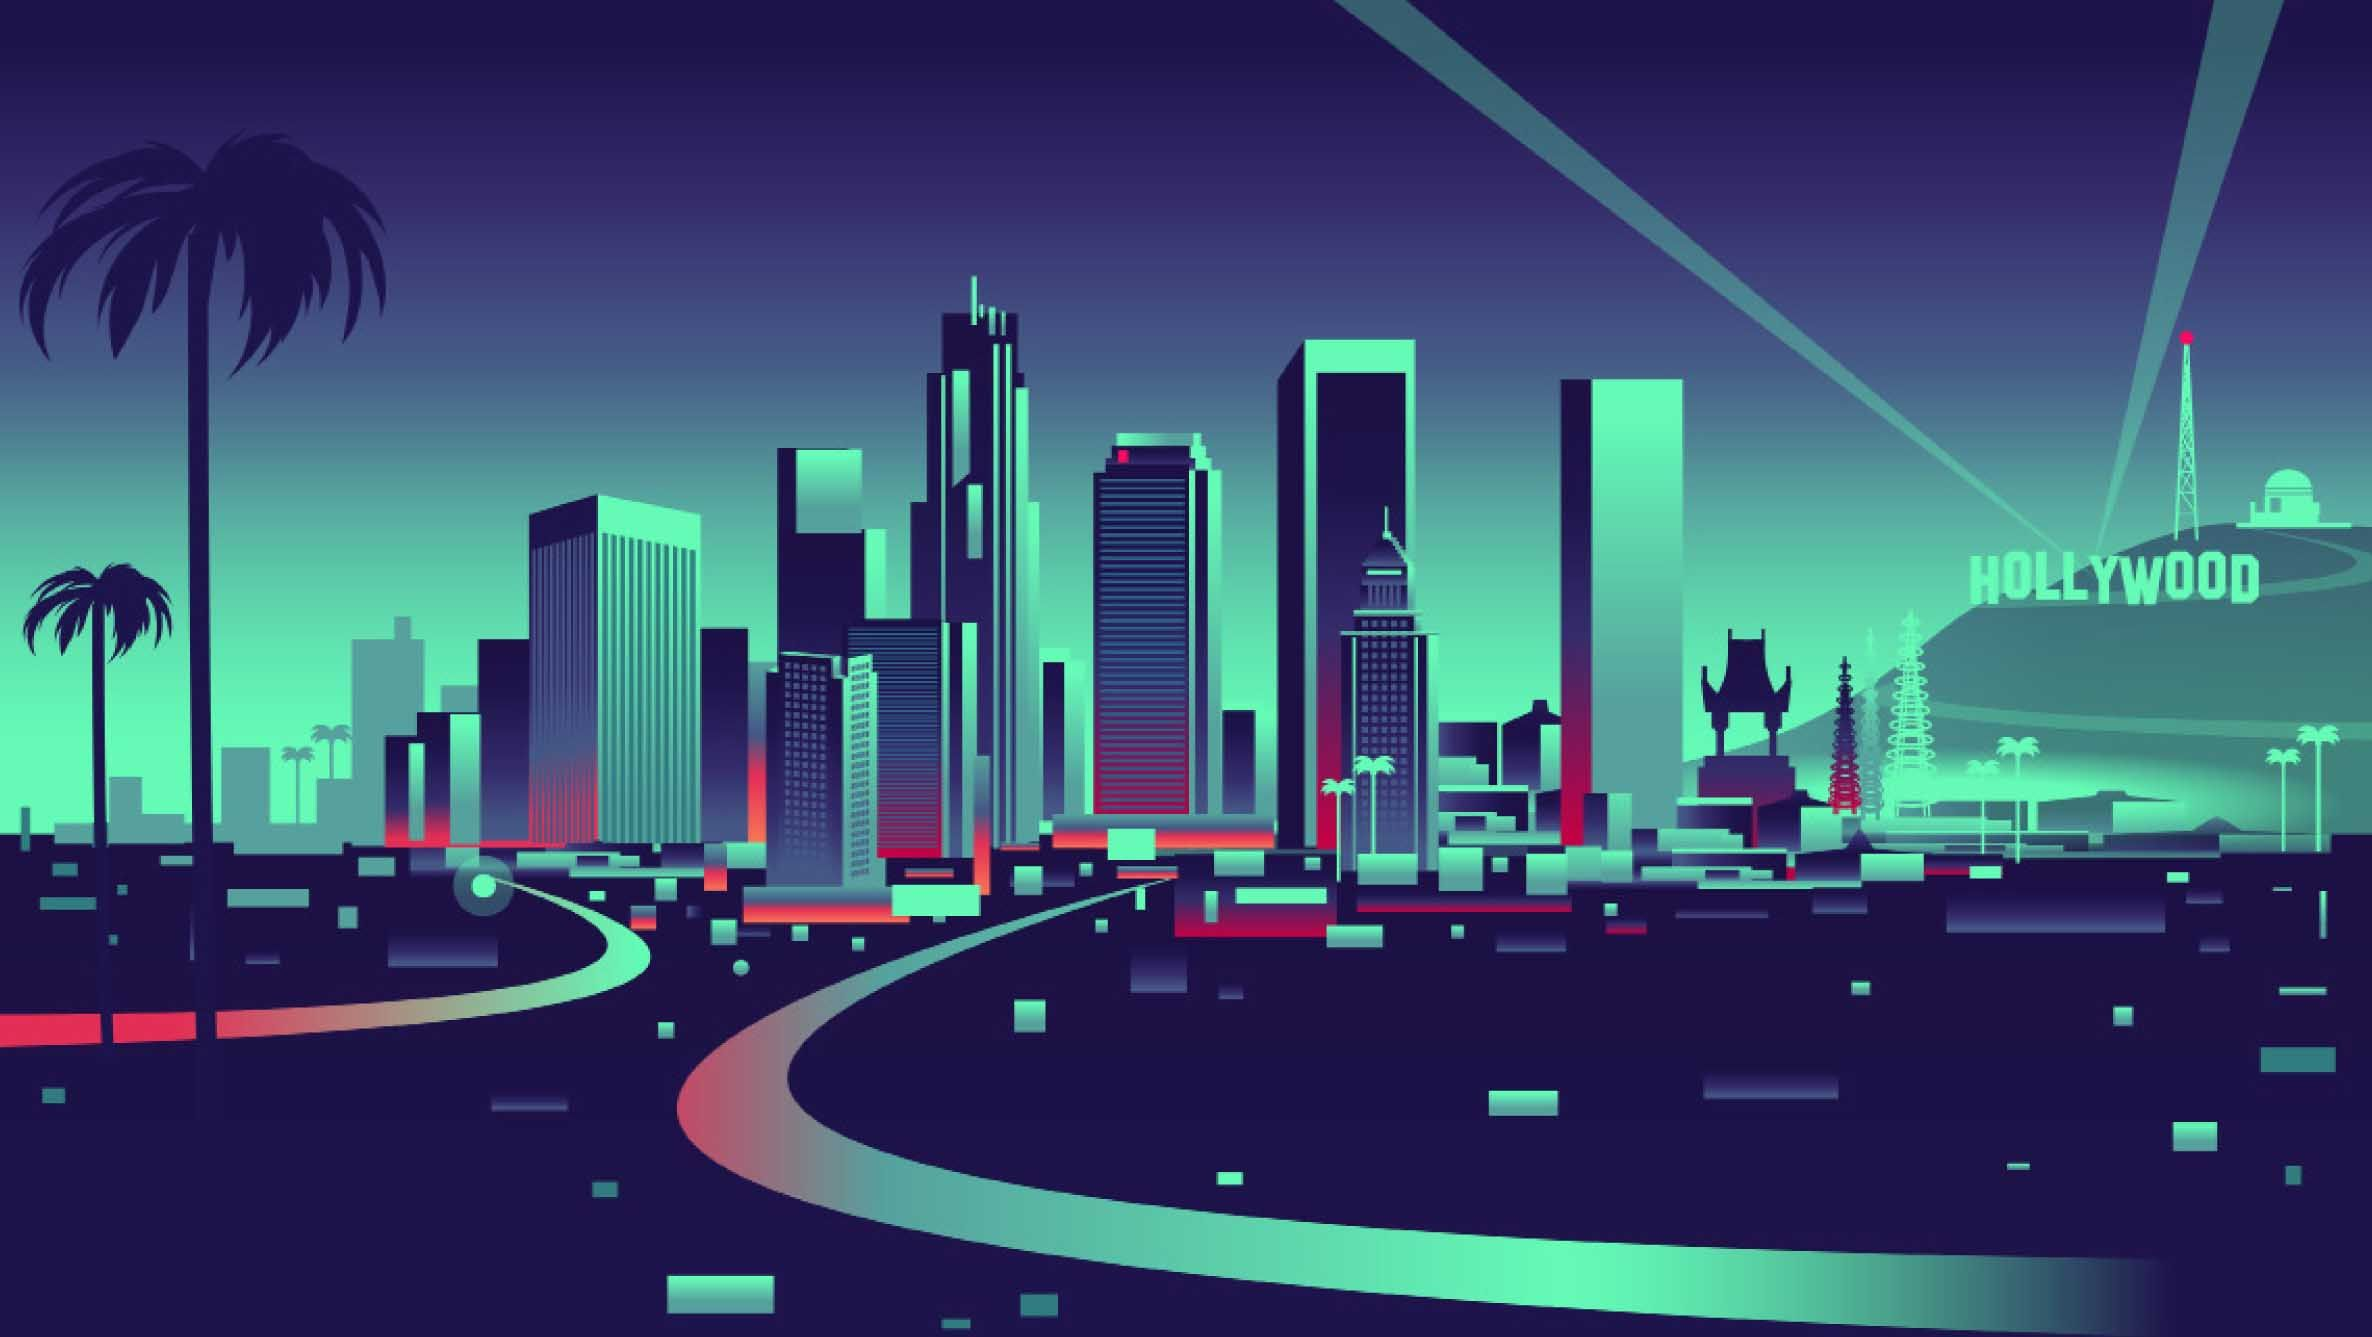 Los Angeles Ca Building Illustration Landscape